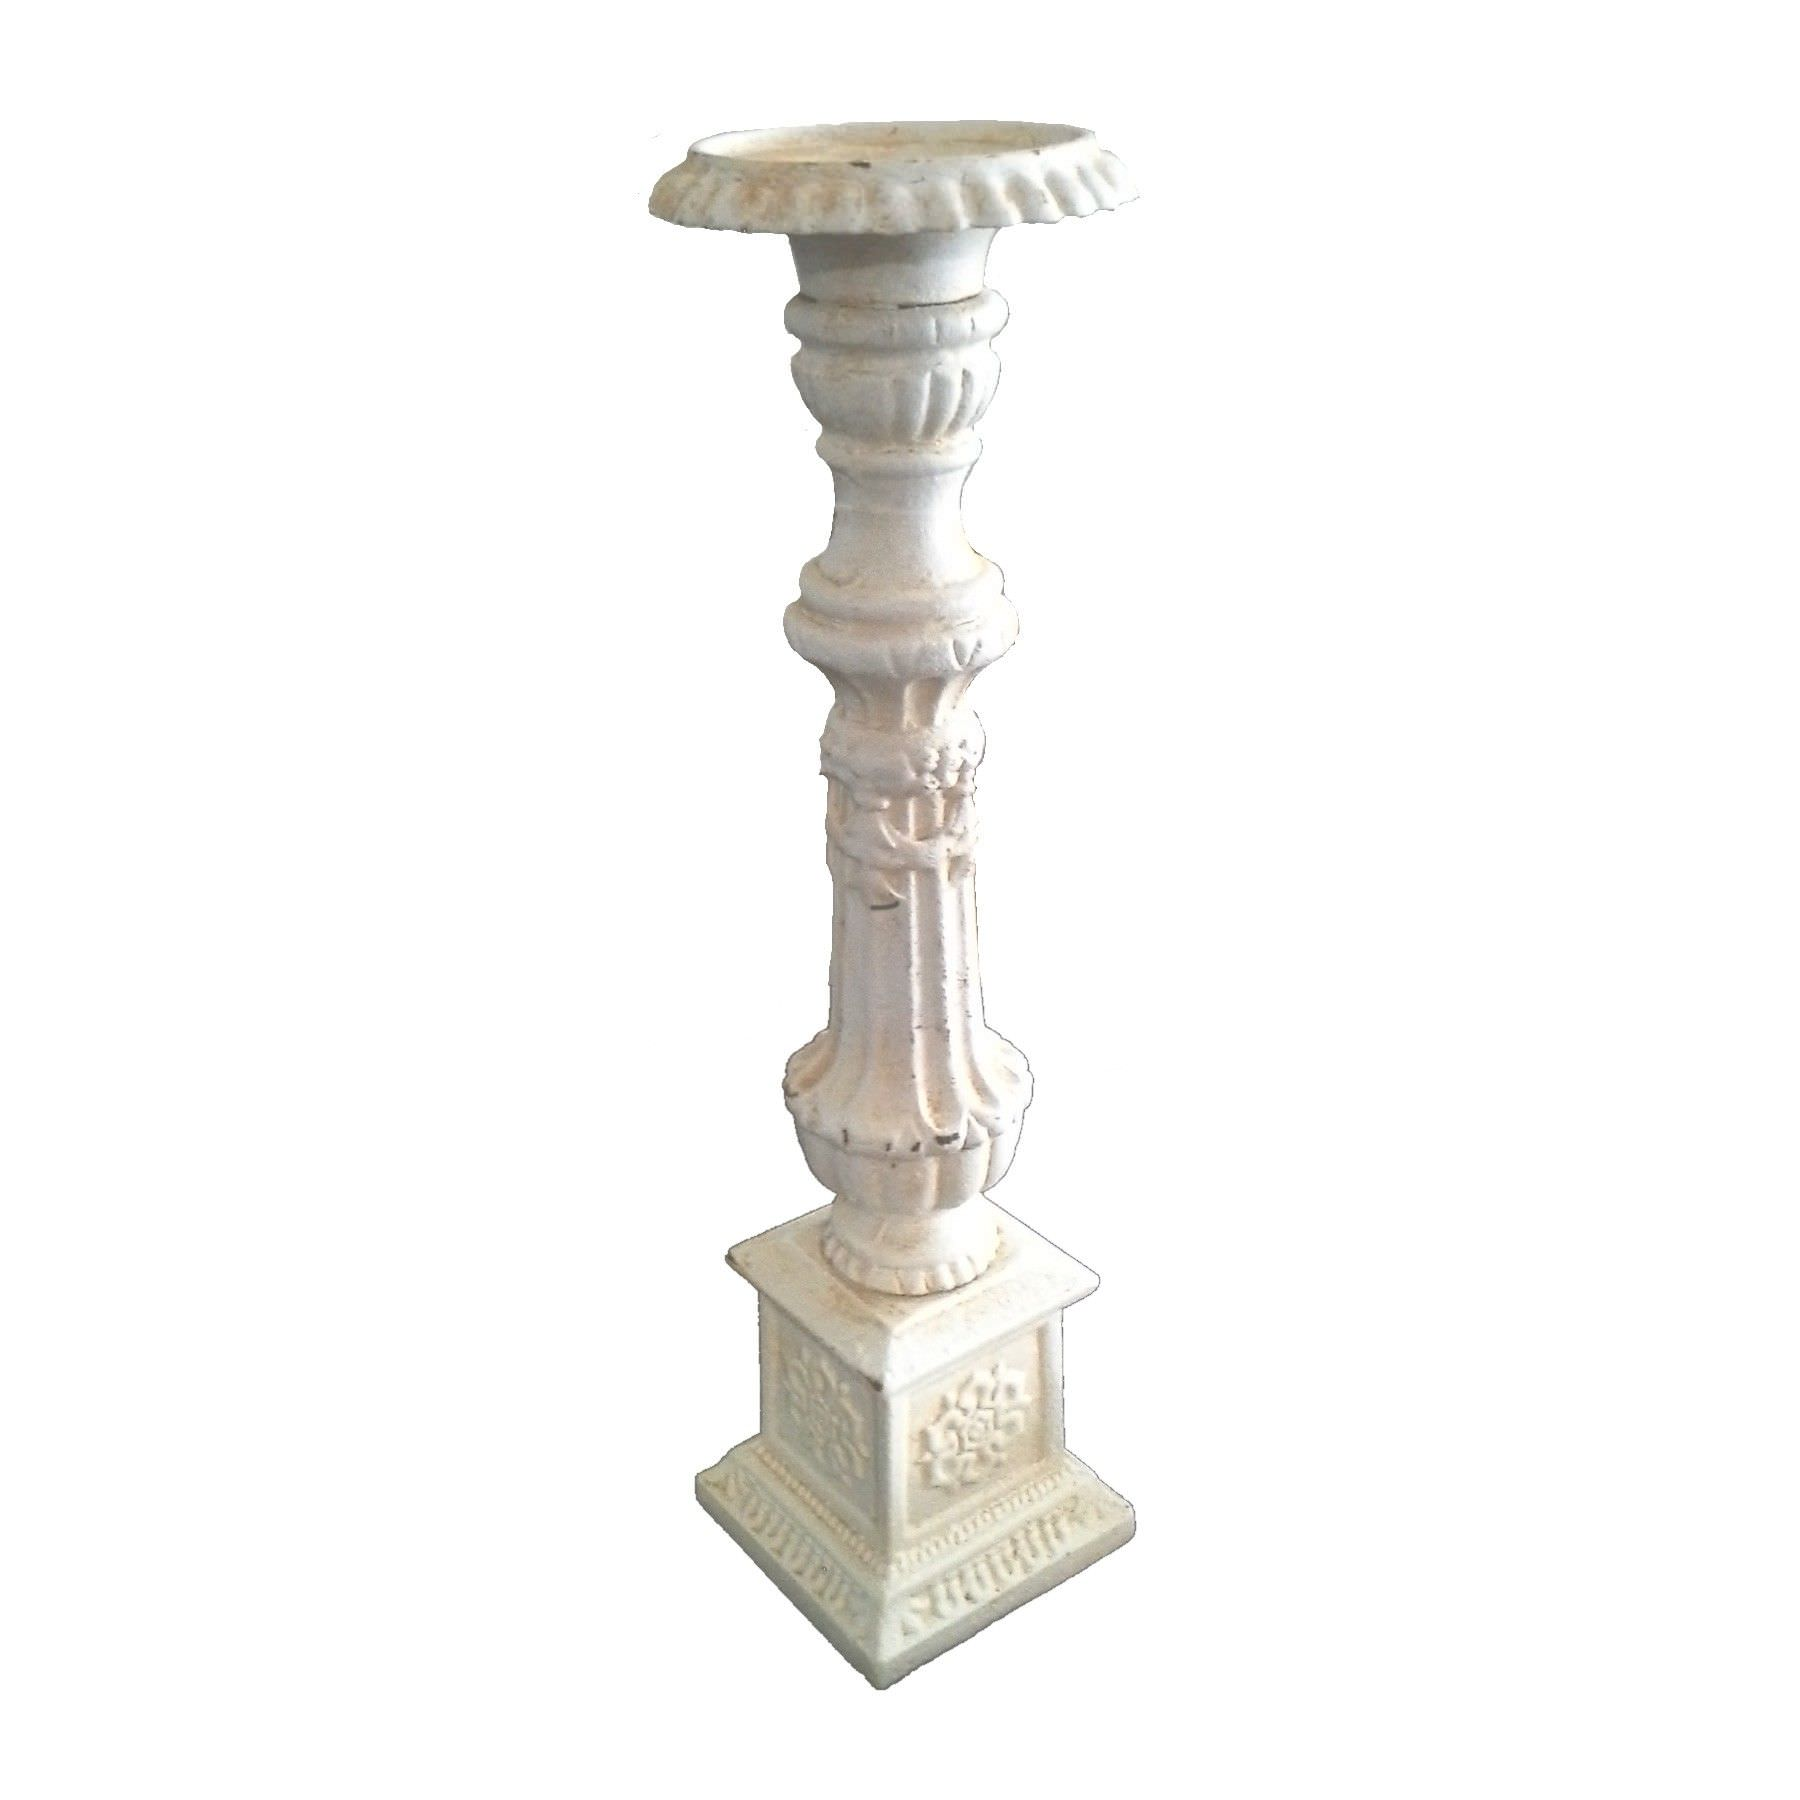 Chiswick Cast Iron Candlestick, Antique White